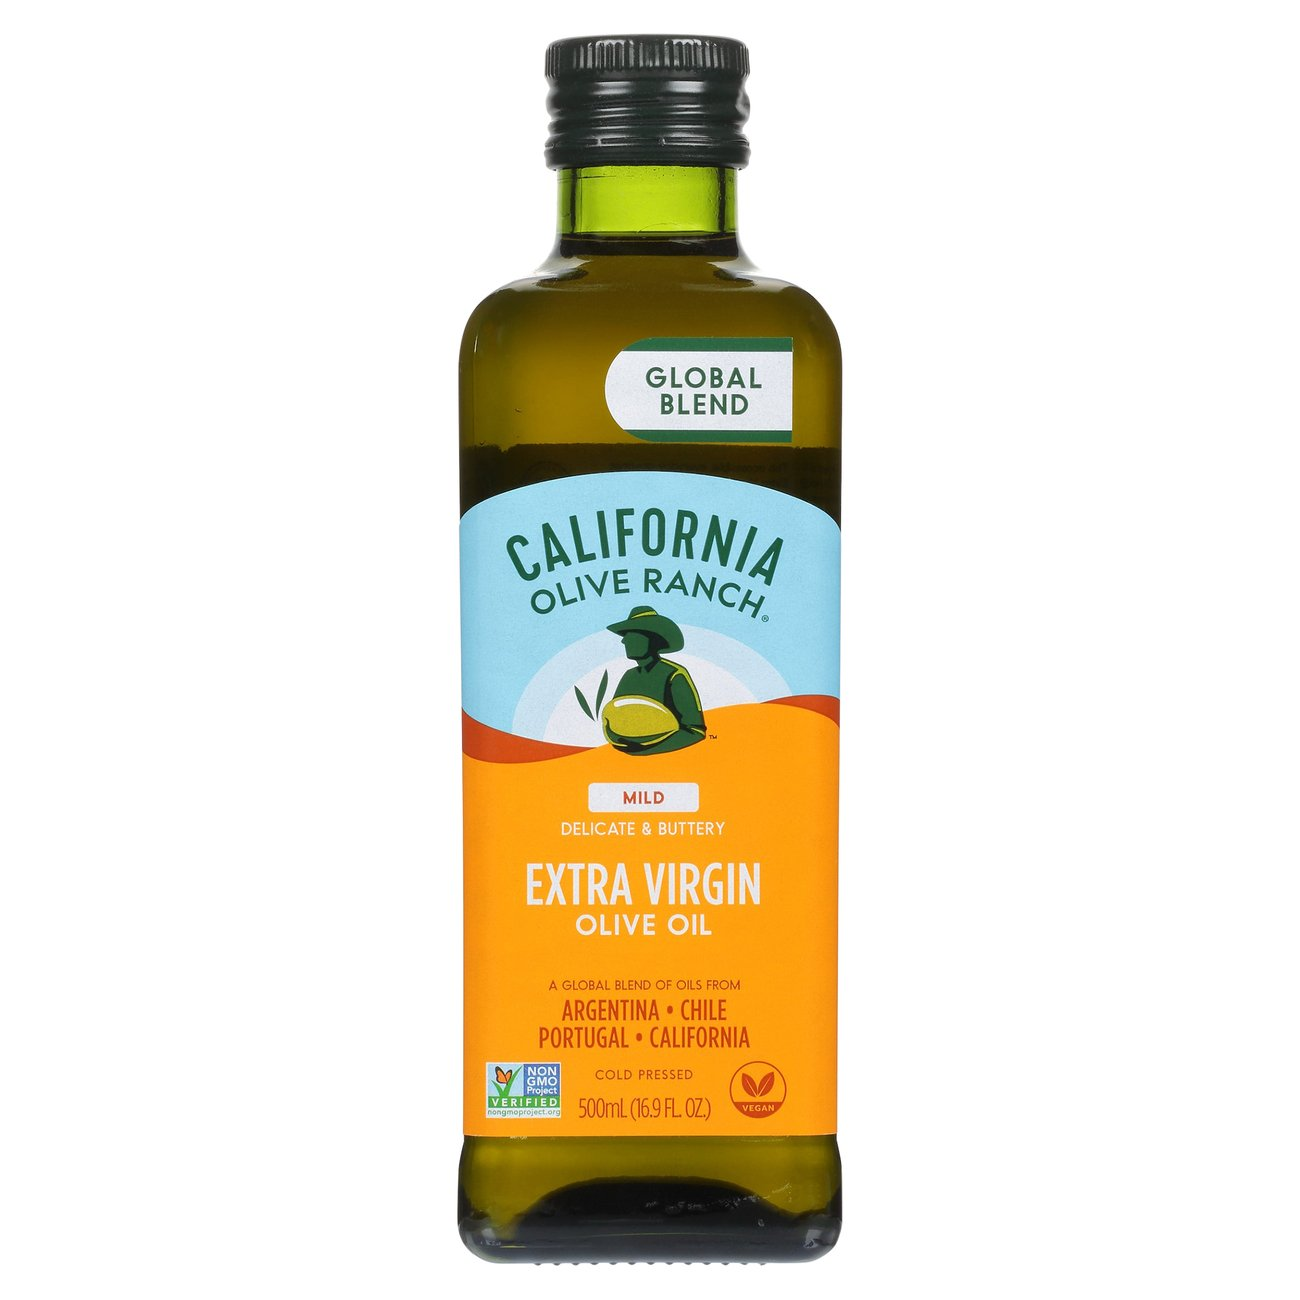 California Olive Ranch Mild Buttery Extra Virgin Olive Oil Shop Oils At H E B